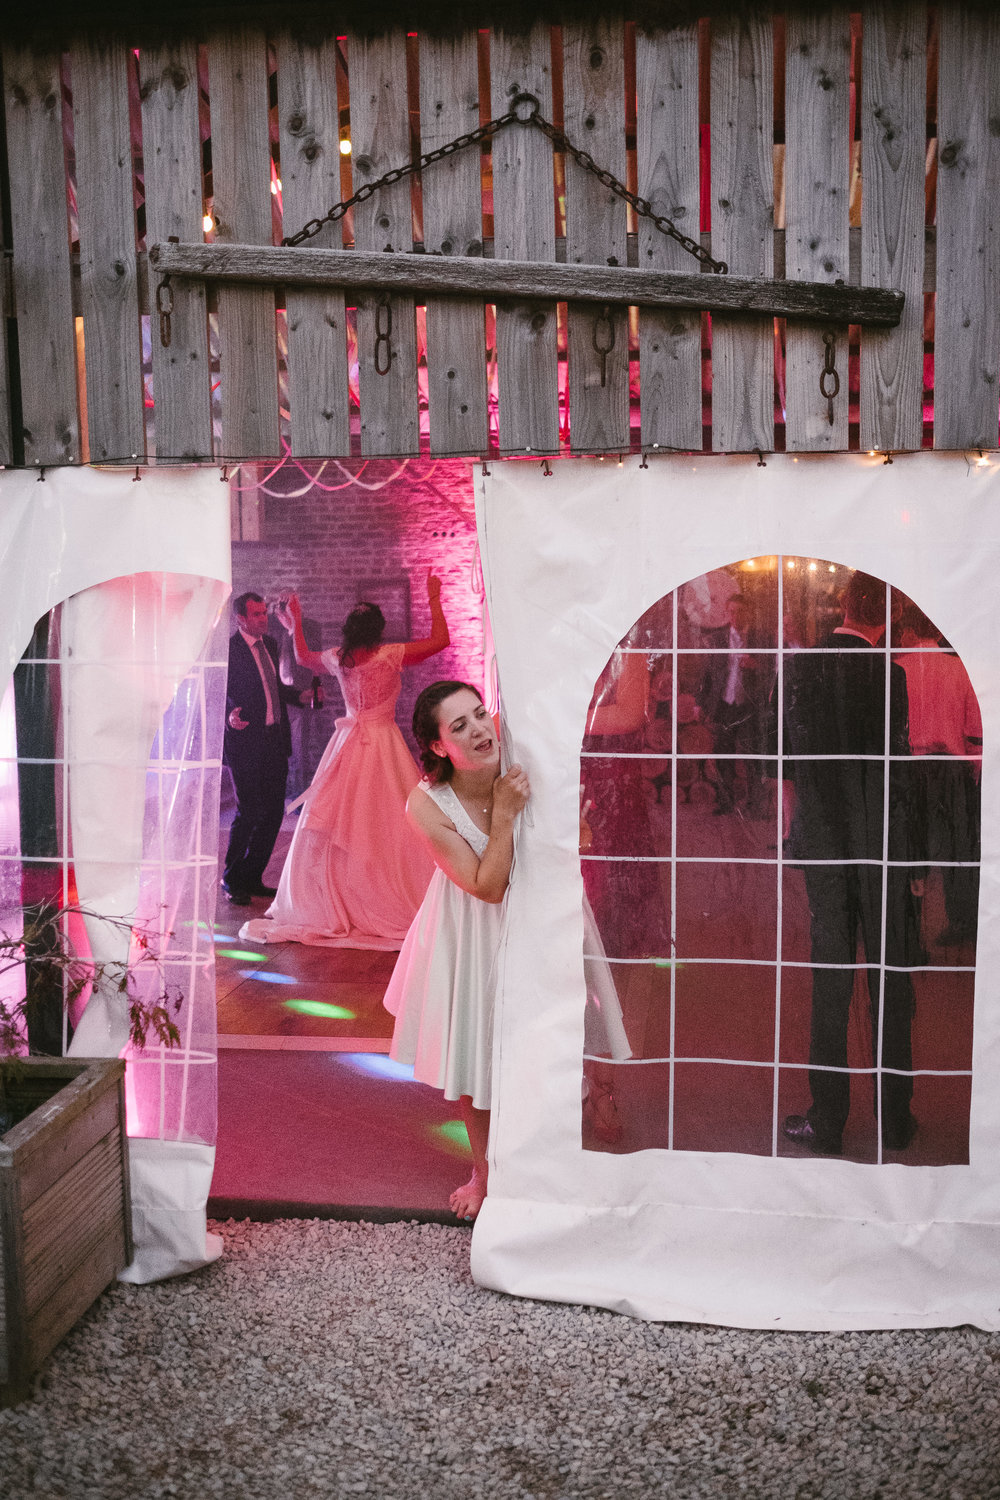 Bridesmaid peeks out of marquee while bride dances in the background